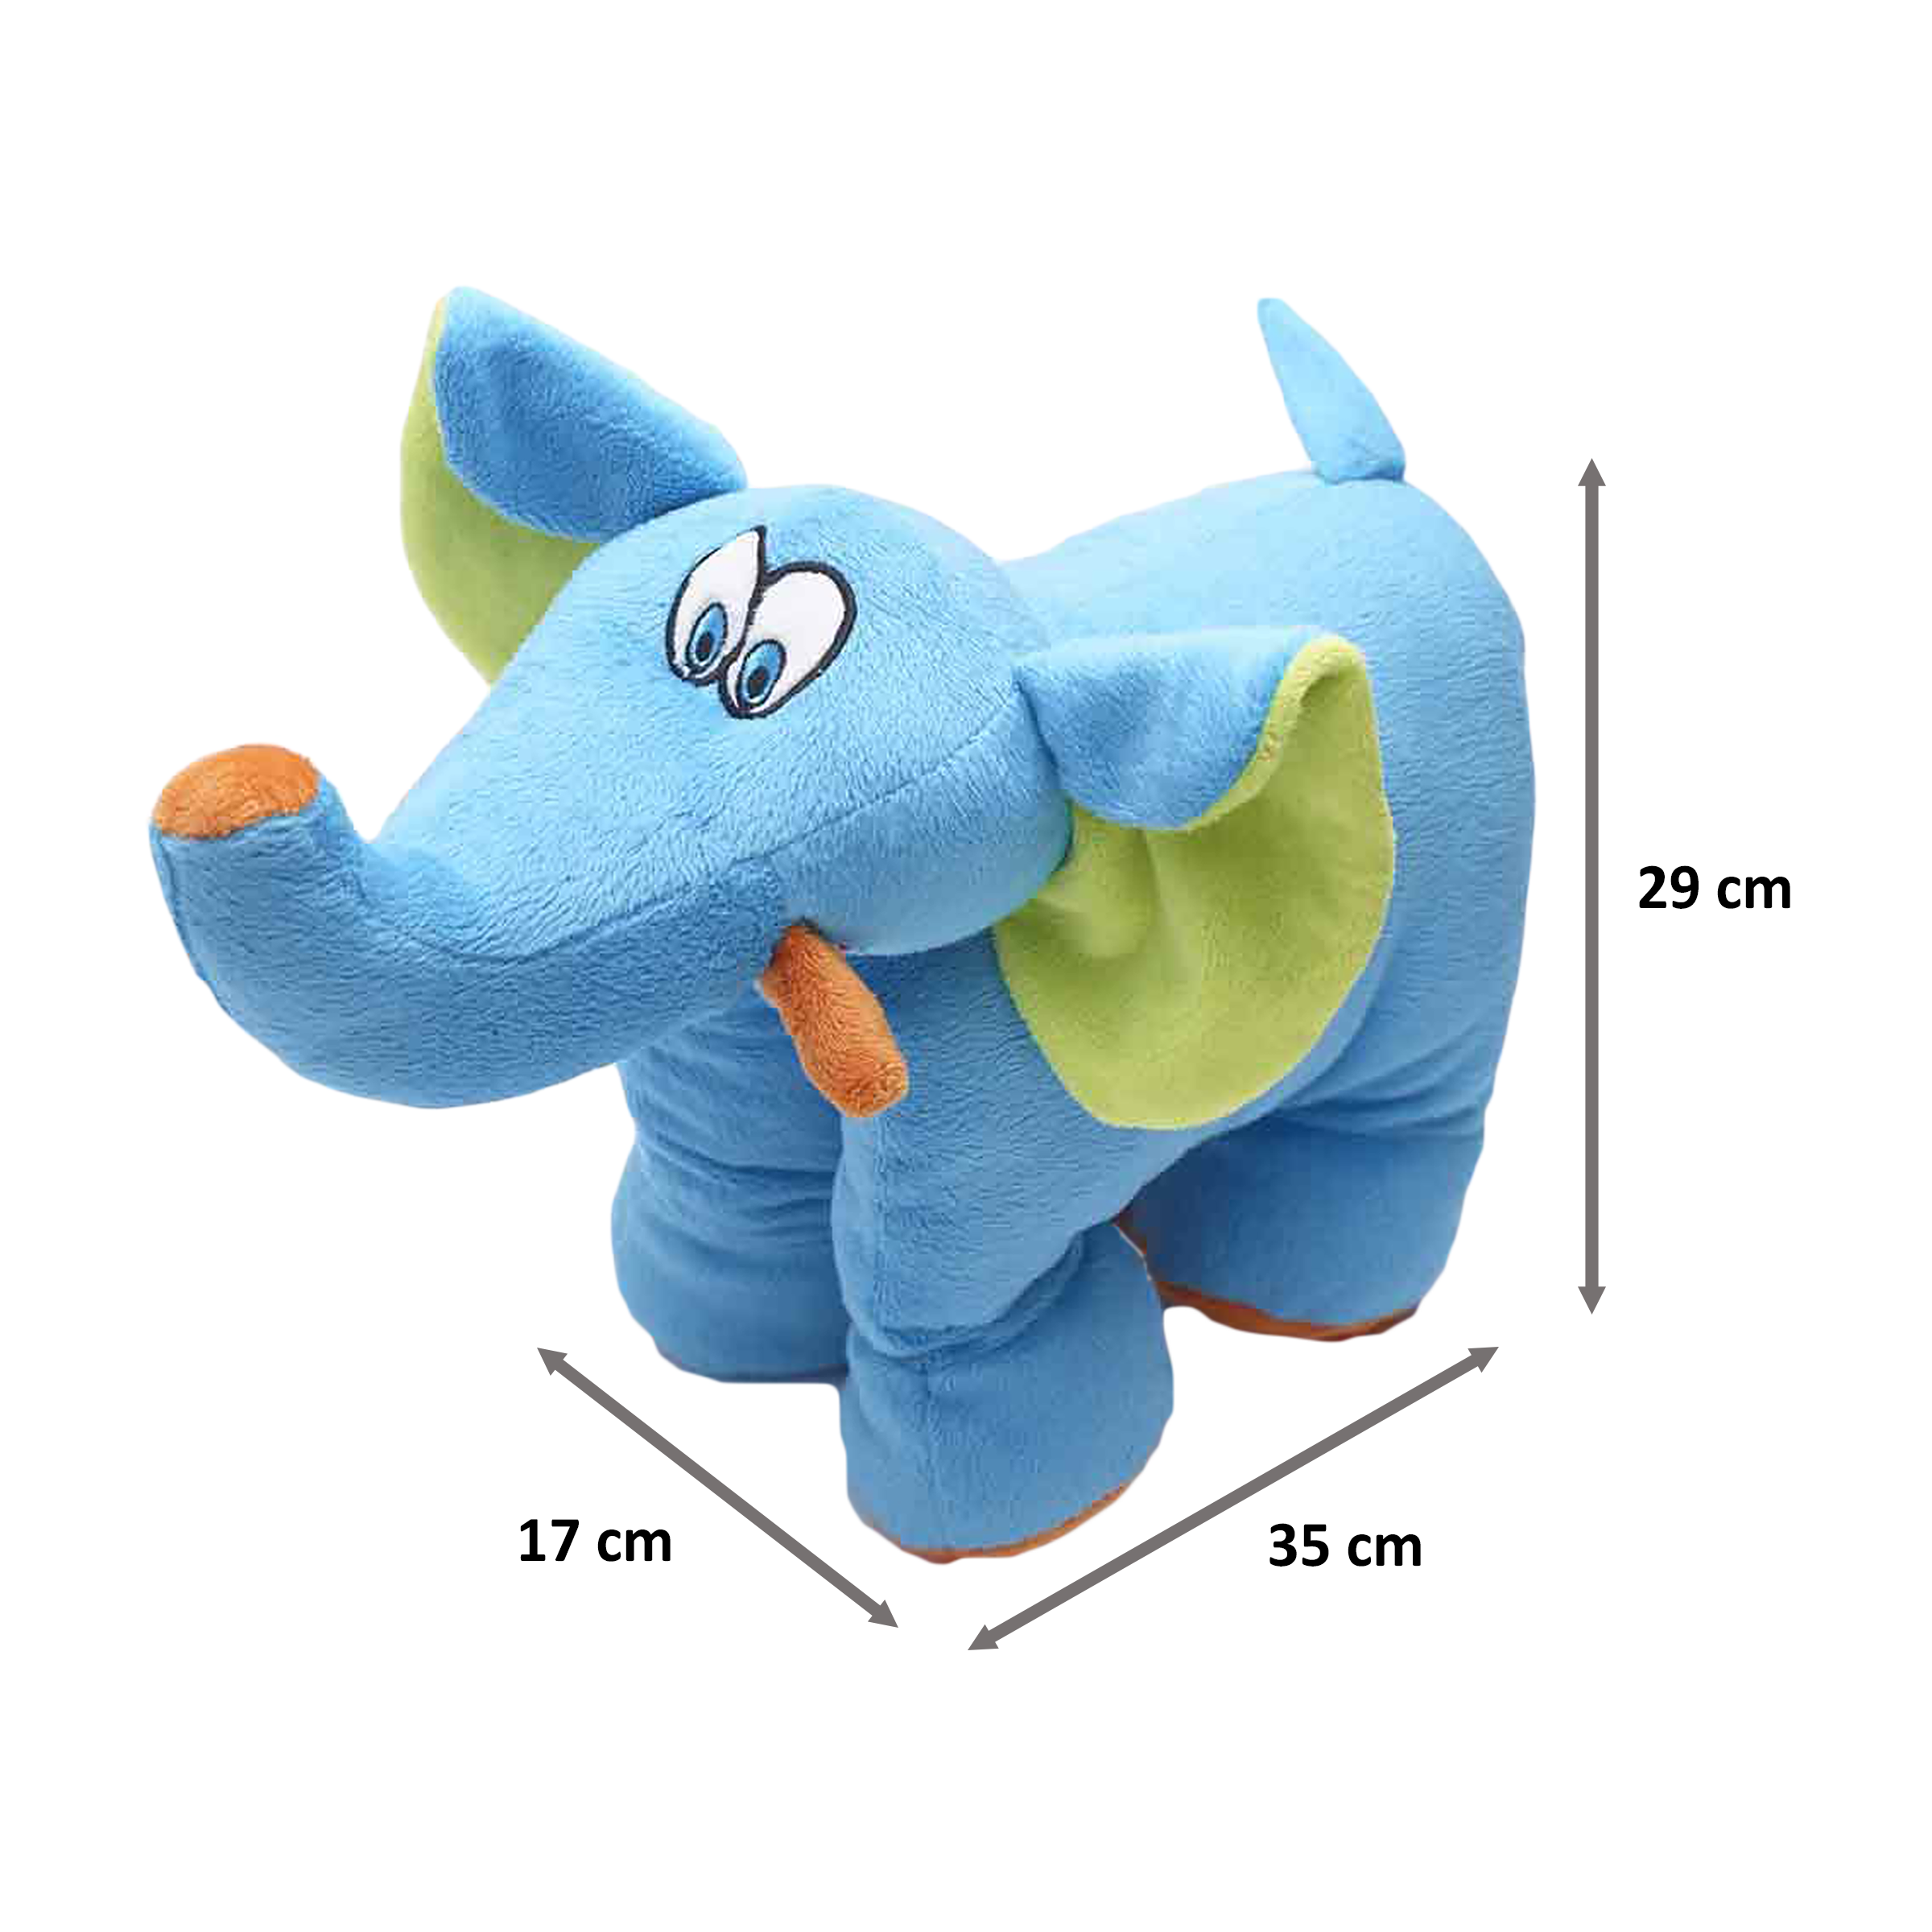 Travel Blue Trunky The Elephant Polyester Neck Pillow (Soft and Comfortable, Multicolor)_2